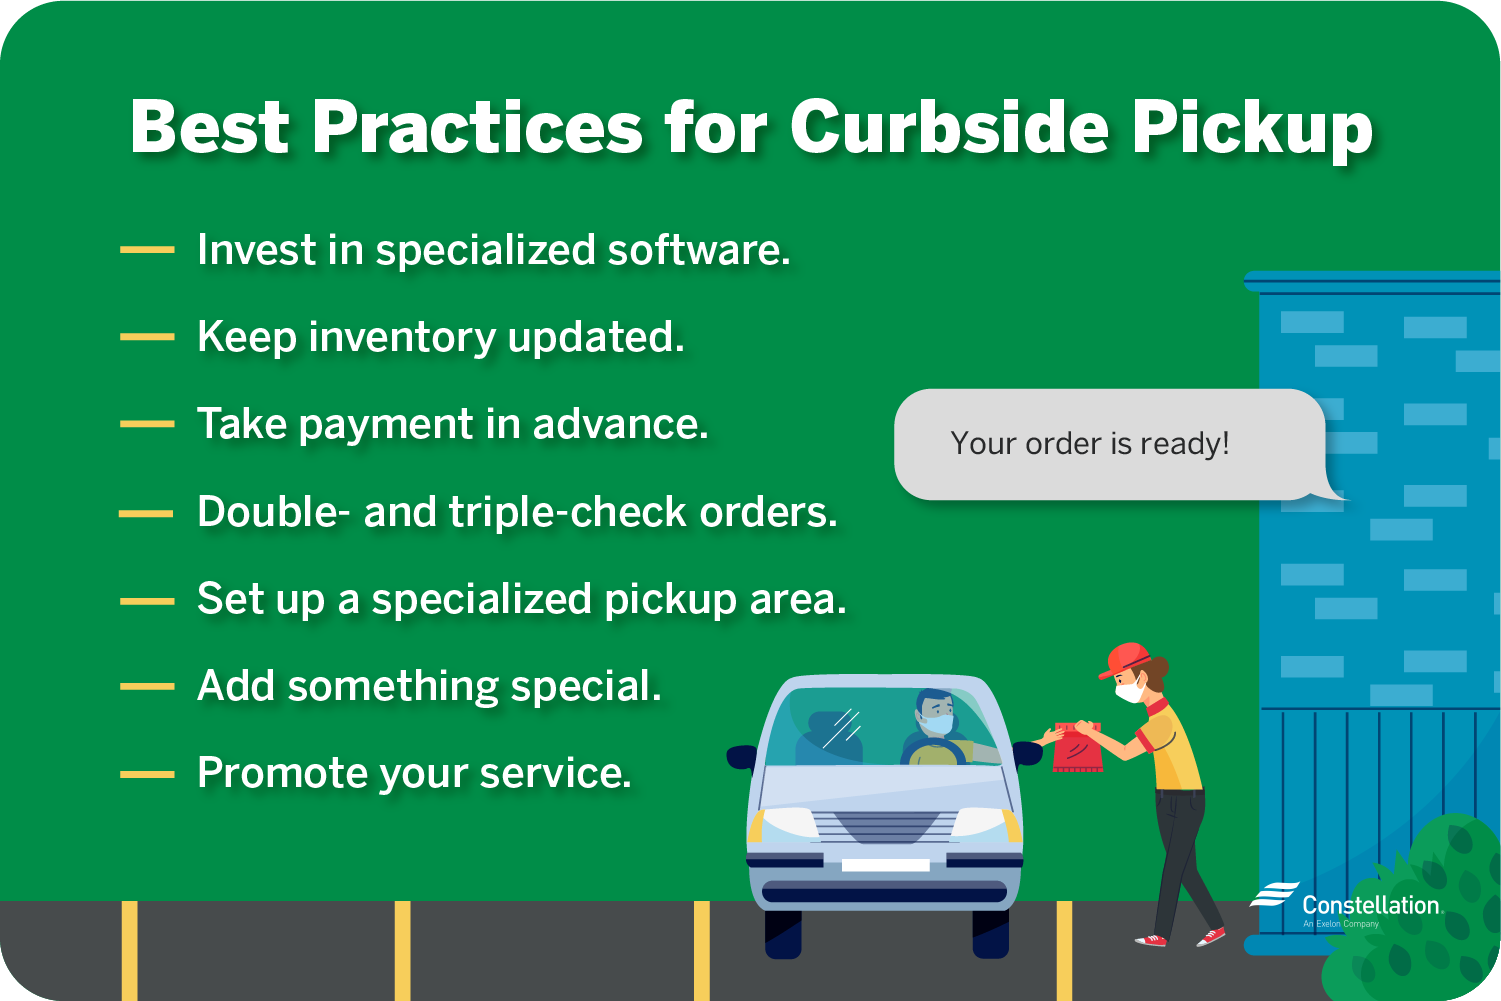 Best practices for curbside pickup